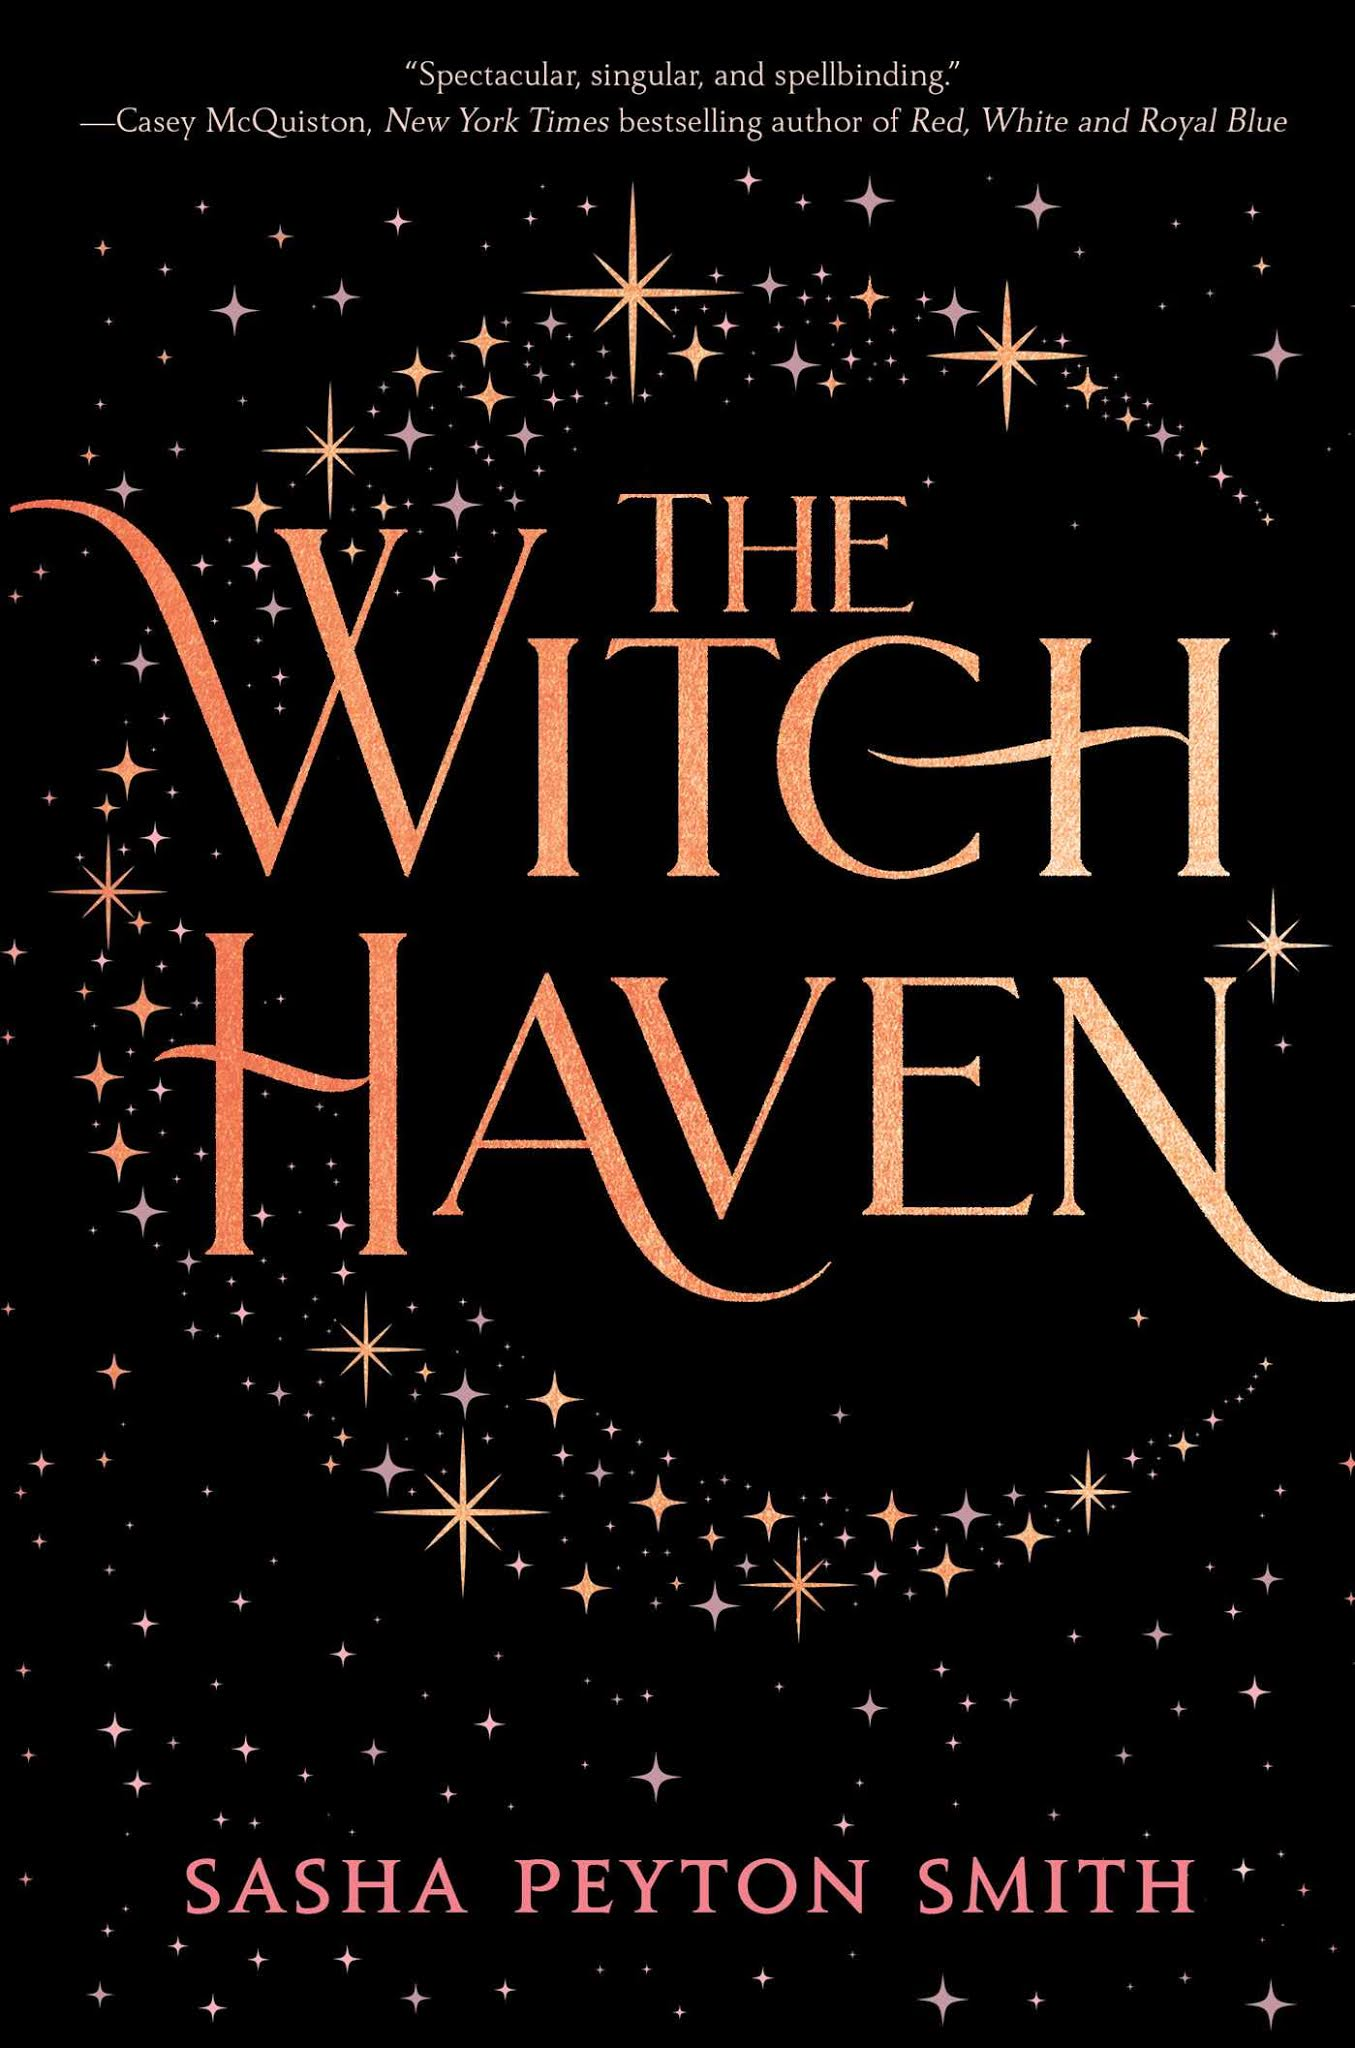 The Cover Contessa ARC Review The Witch Haven by Sasha Peyton Smith